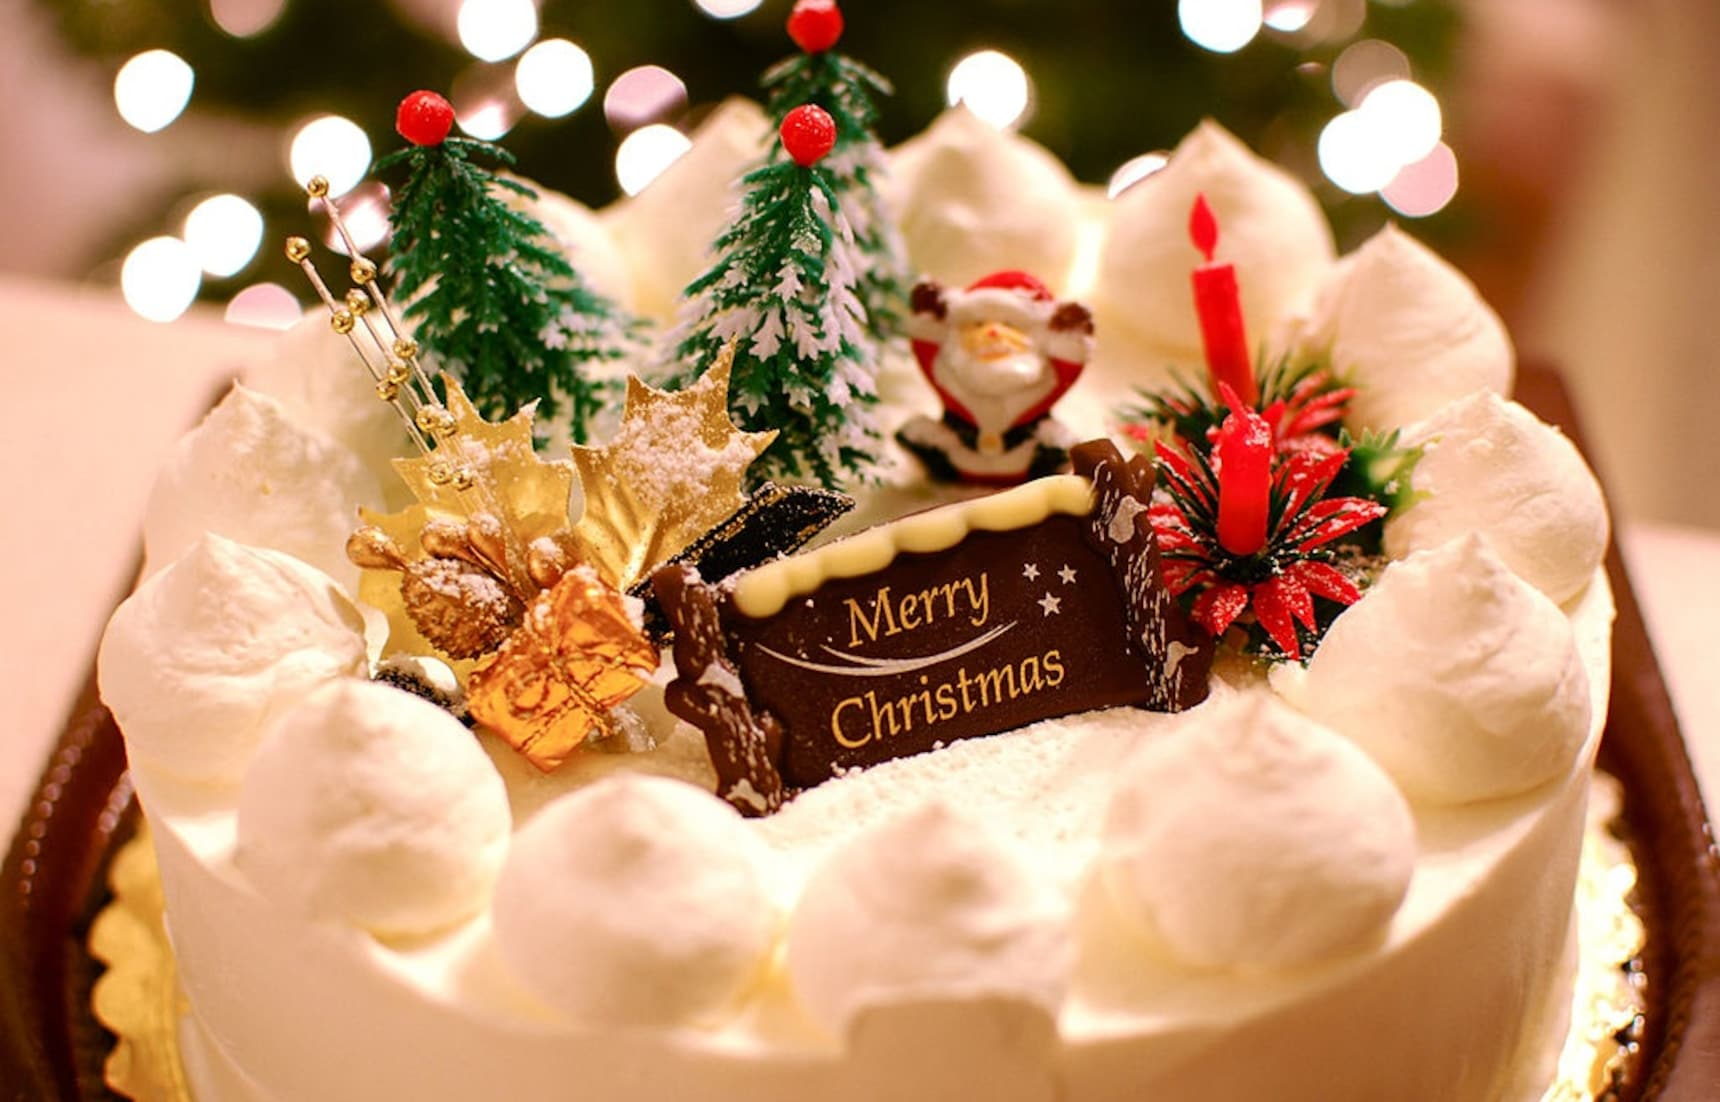 Japanese Christmas Food Traditions Explained